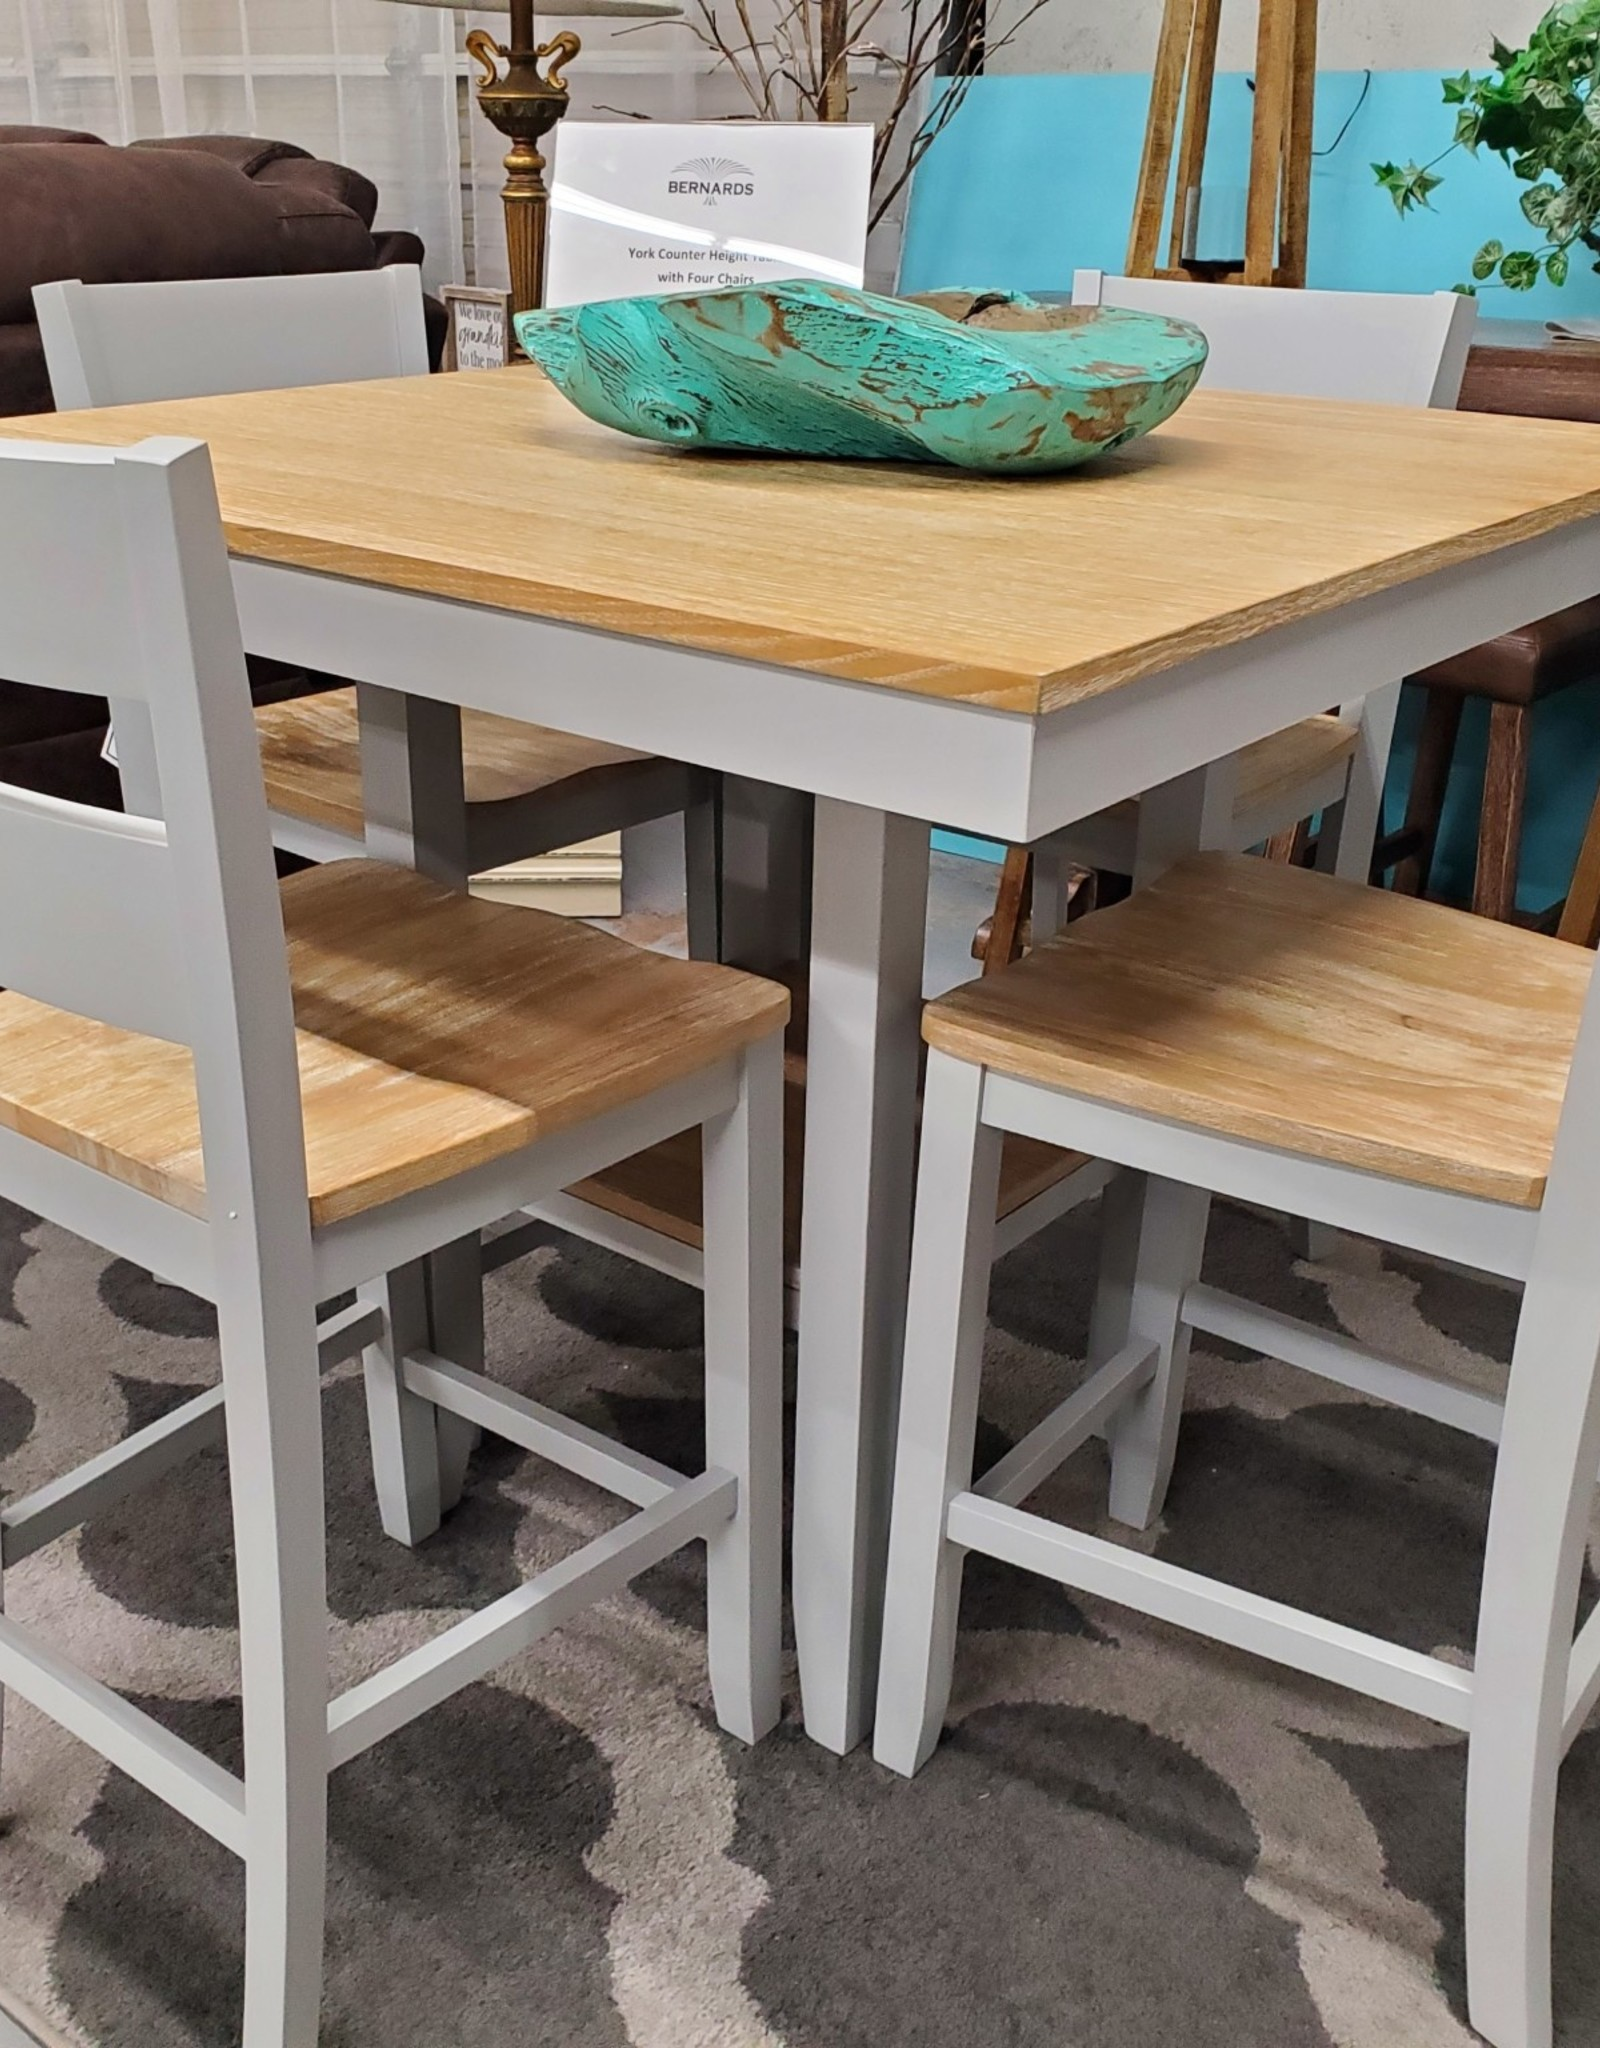 Bernards York Counter Height Table with Four Chairs